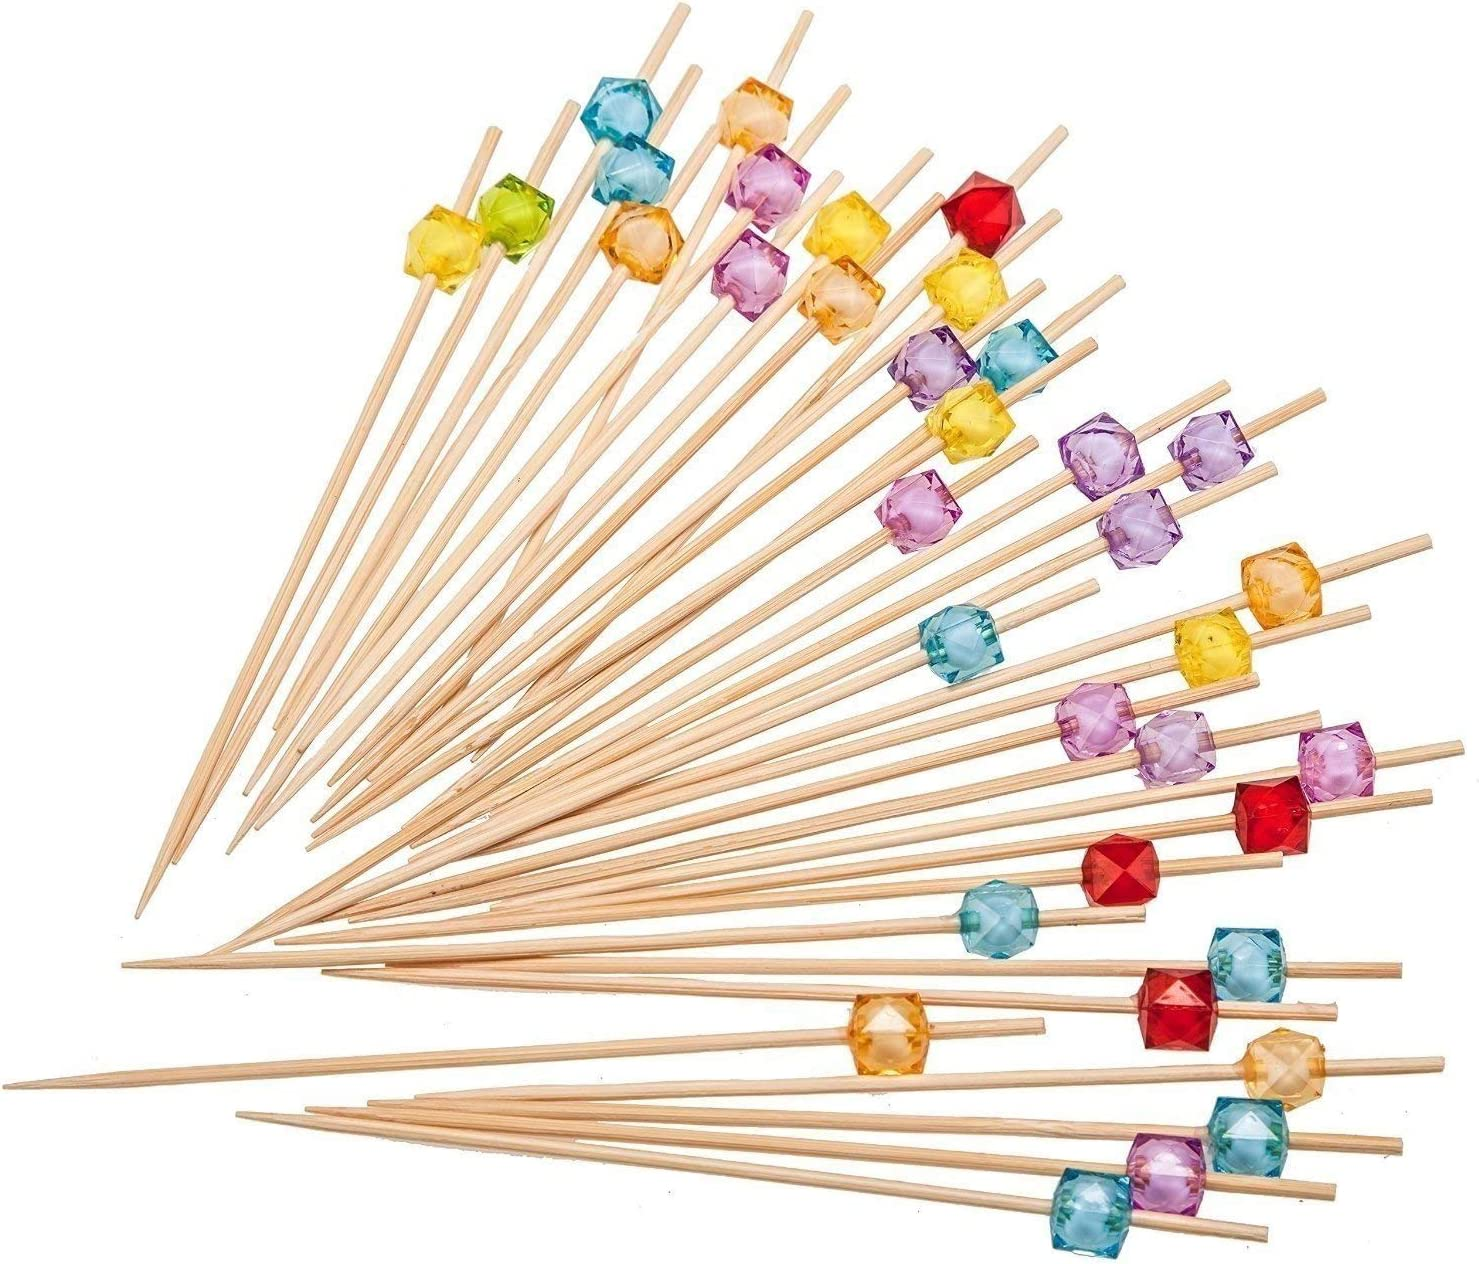 PuTwo Picks Handmade Natural Bamboo Sticks with Cube Beads for Cocktail Appetizers Fruits Dessert, 300 counts, Multicolor